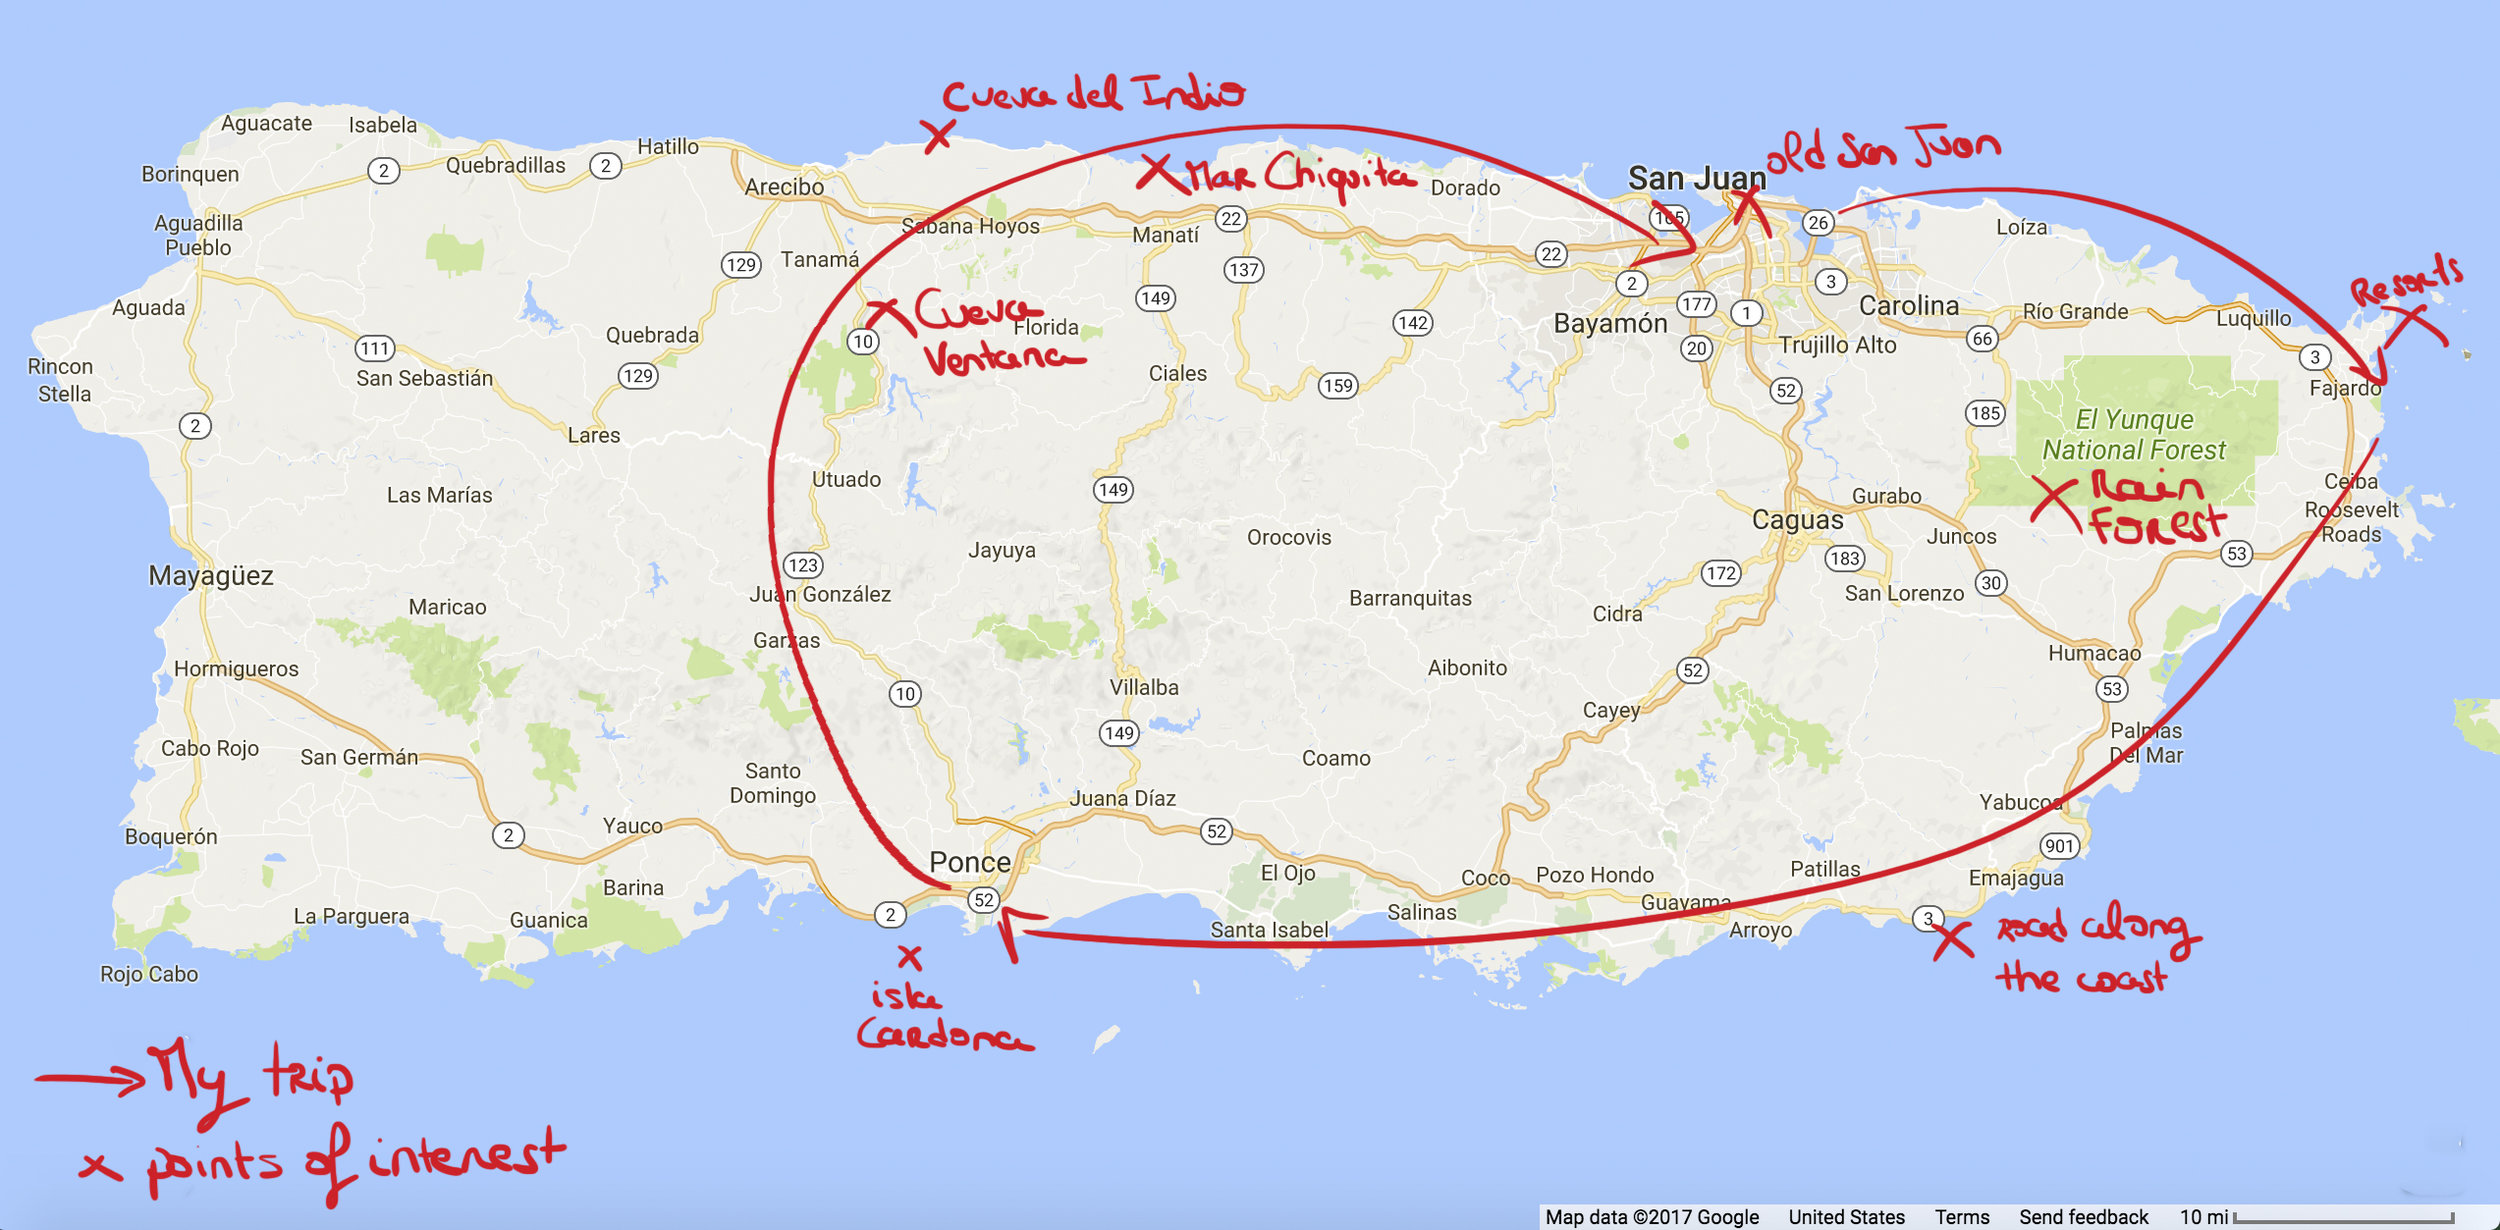 A map that sums up the trip. We have not done all the points of interest but they were recommended by local people.